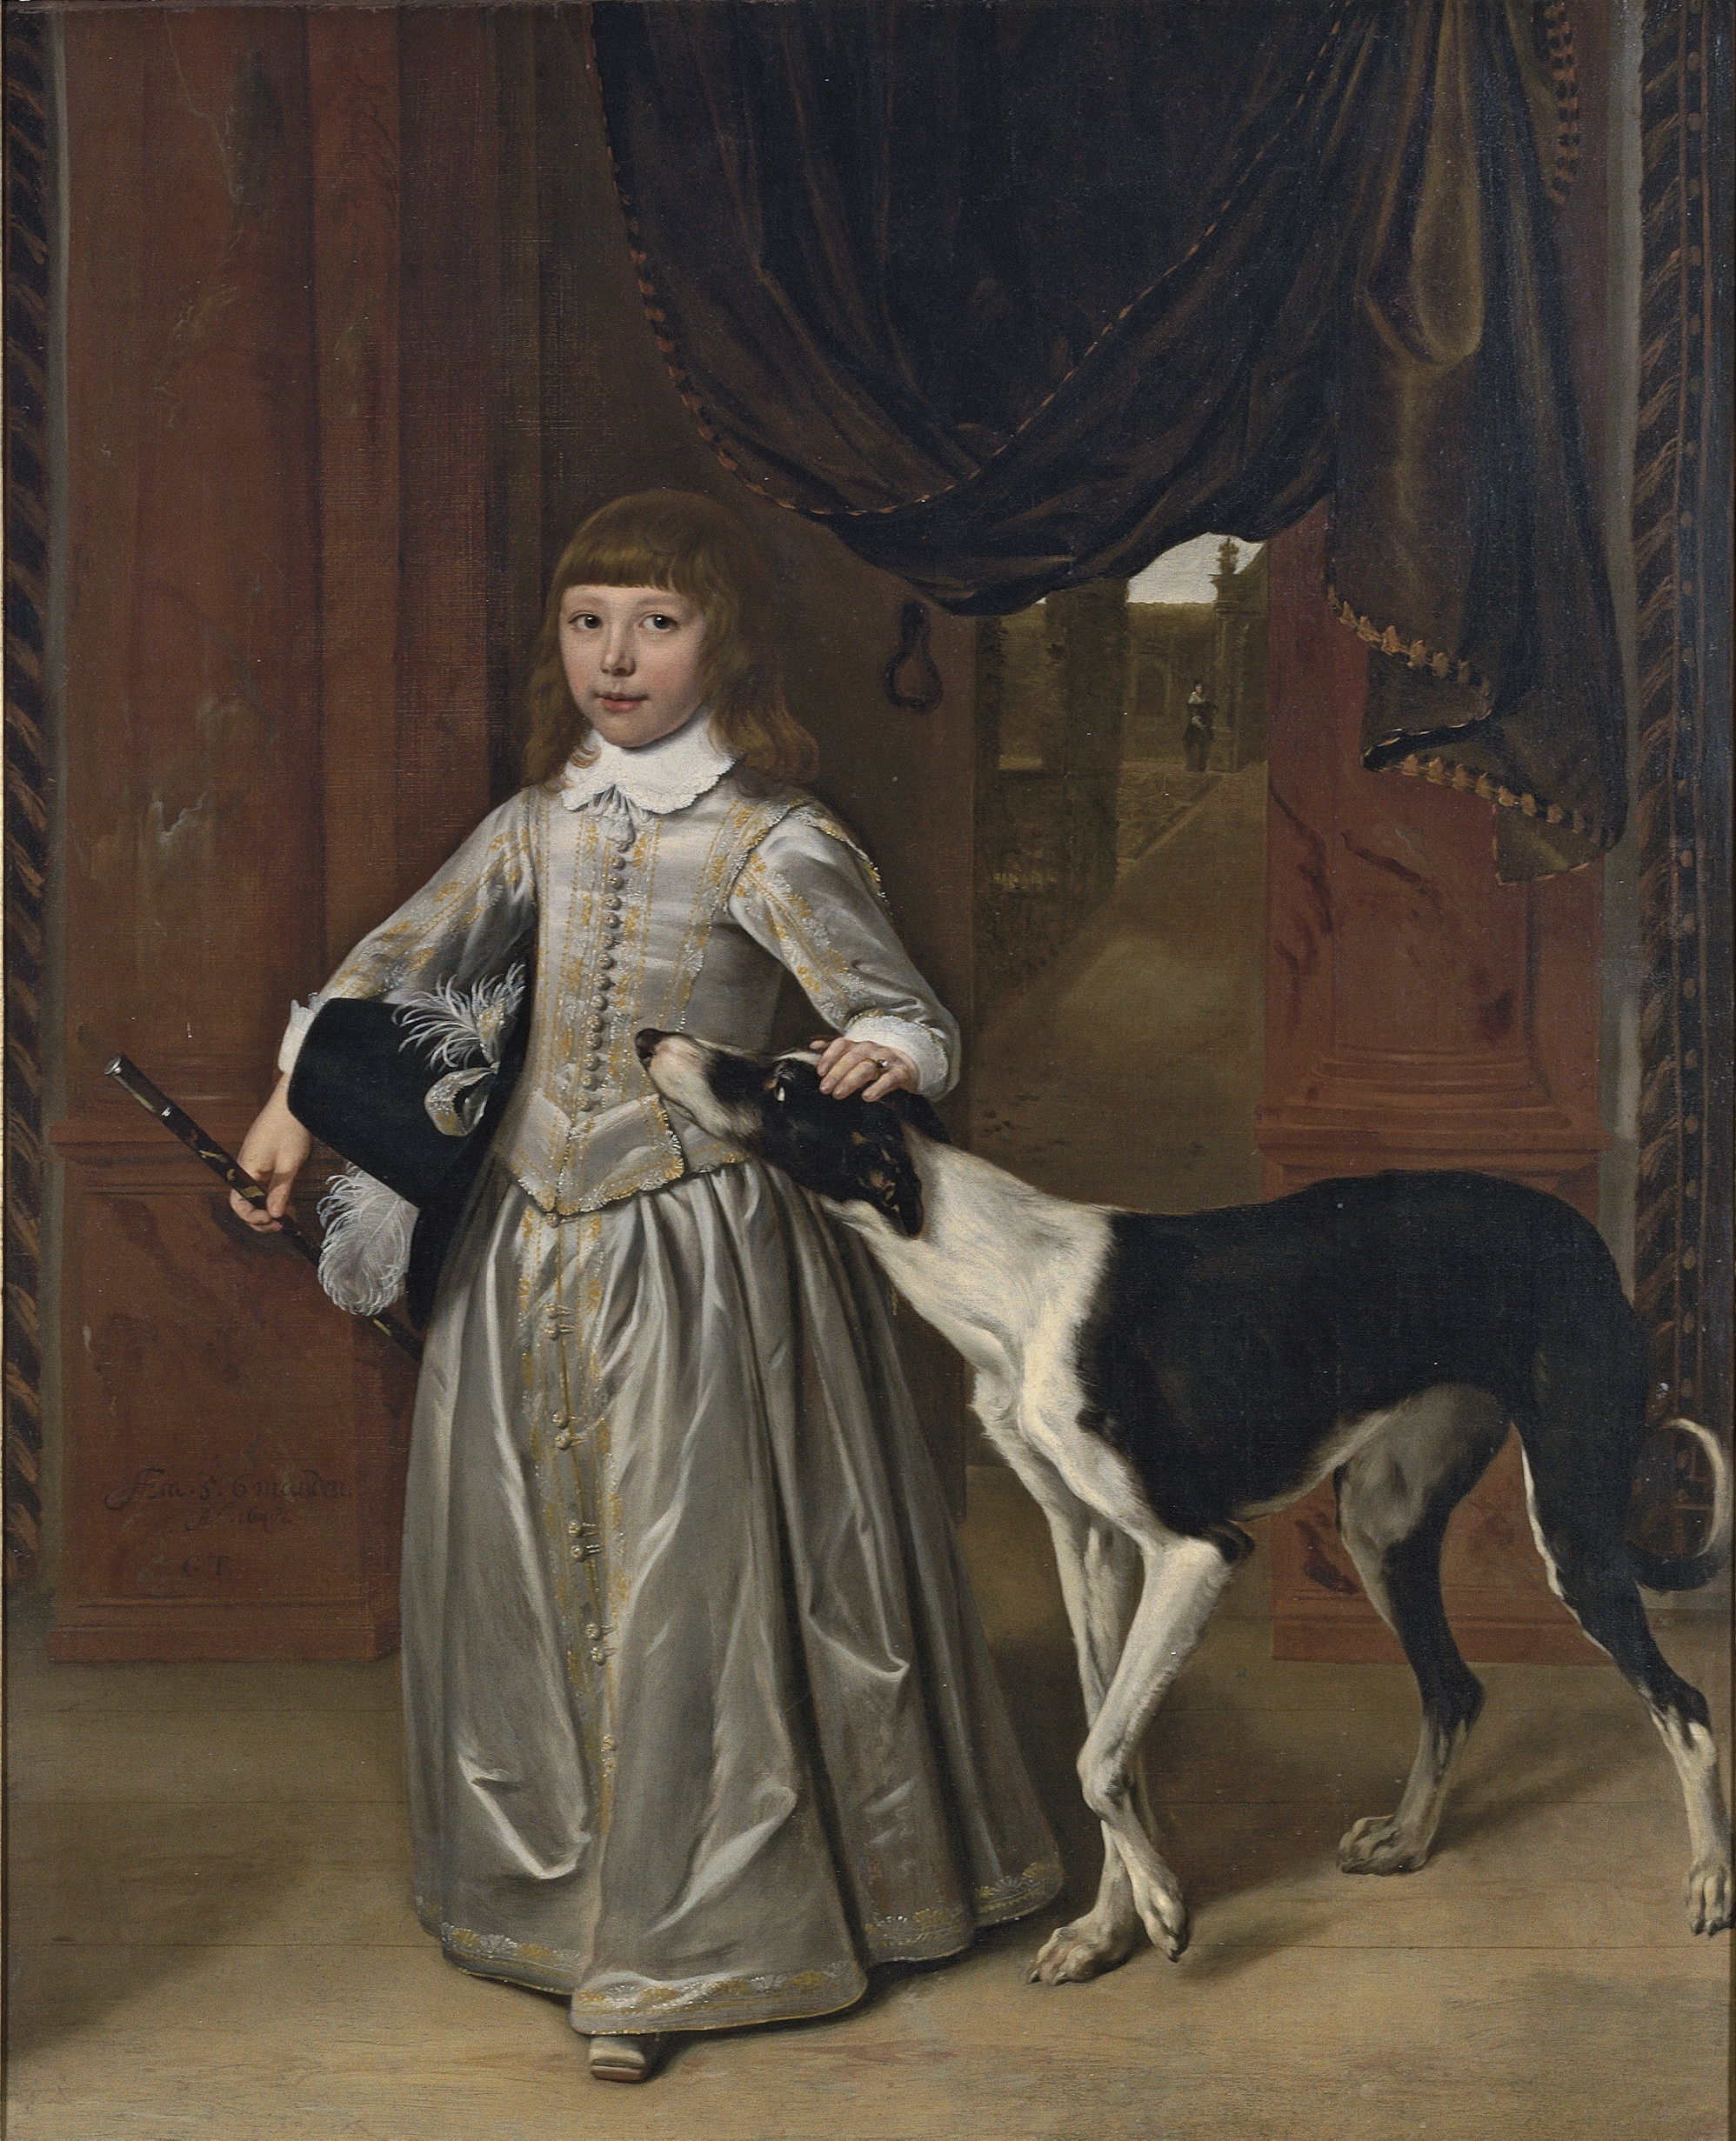 Portrait of a boy, full-length, in a gold-embroidered grey costume with a feathered hat and a cane, his hand on the head of a lurcher, with a garden seen through the door behind